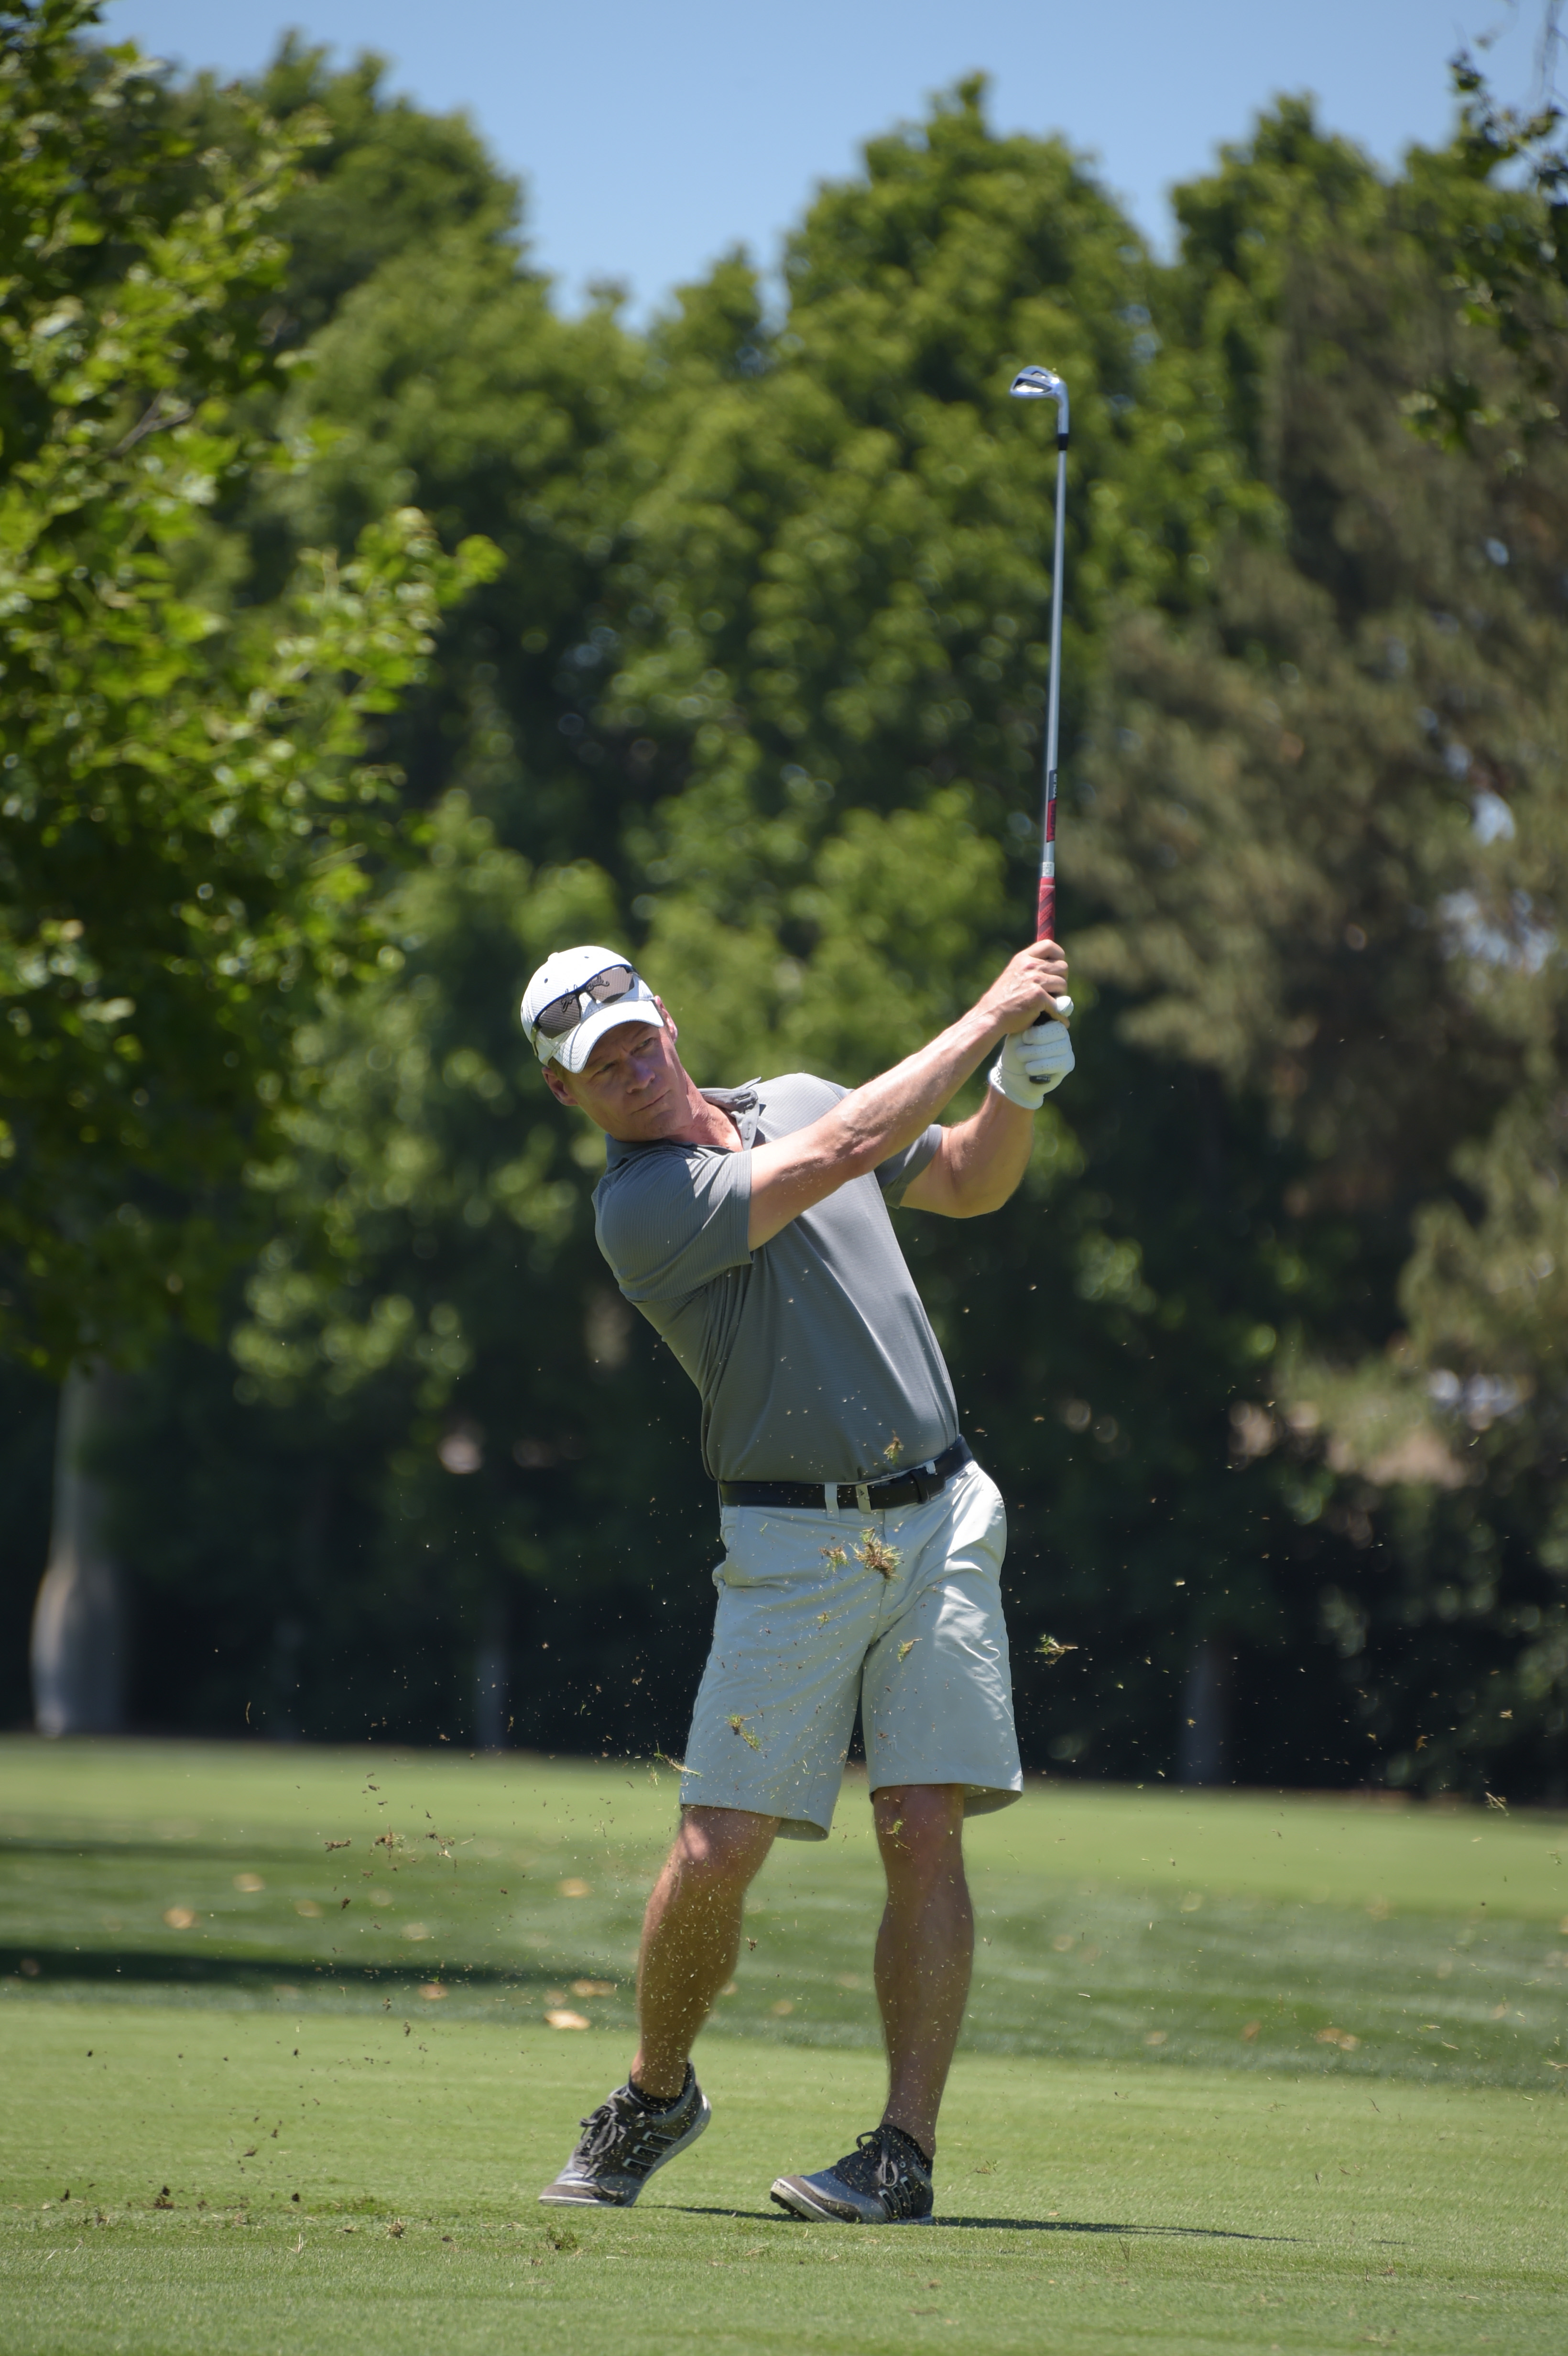 Actor Joel Gretsch plays at the Screen Actors Guild Foundation's 6th Annual Los Angeles Golf Classic on June 8, 2015 in Burbank, California. (Photo by Jason Kempin/Getty Images for The Screen Actors Guild Foundation)